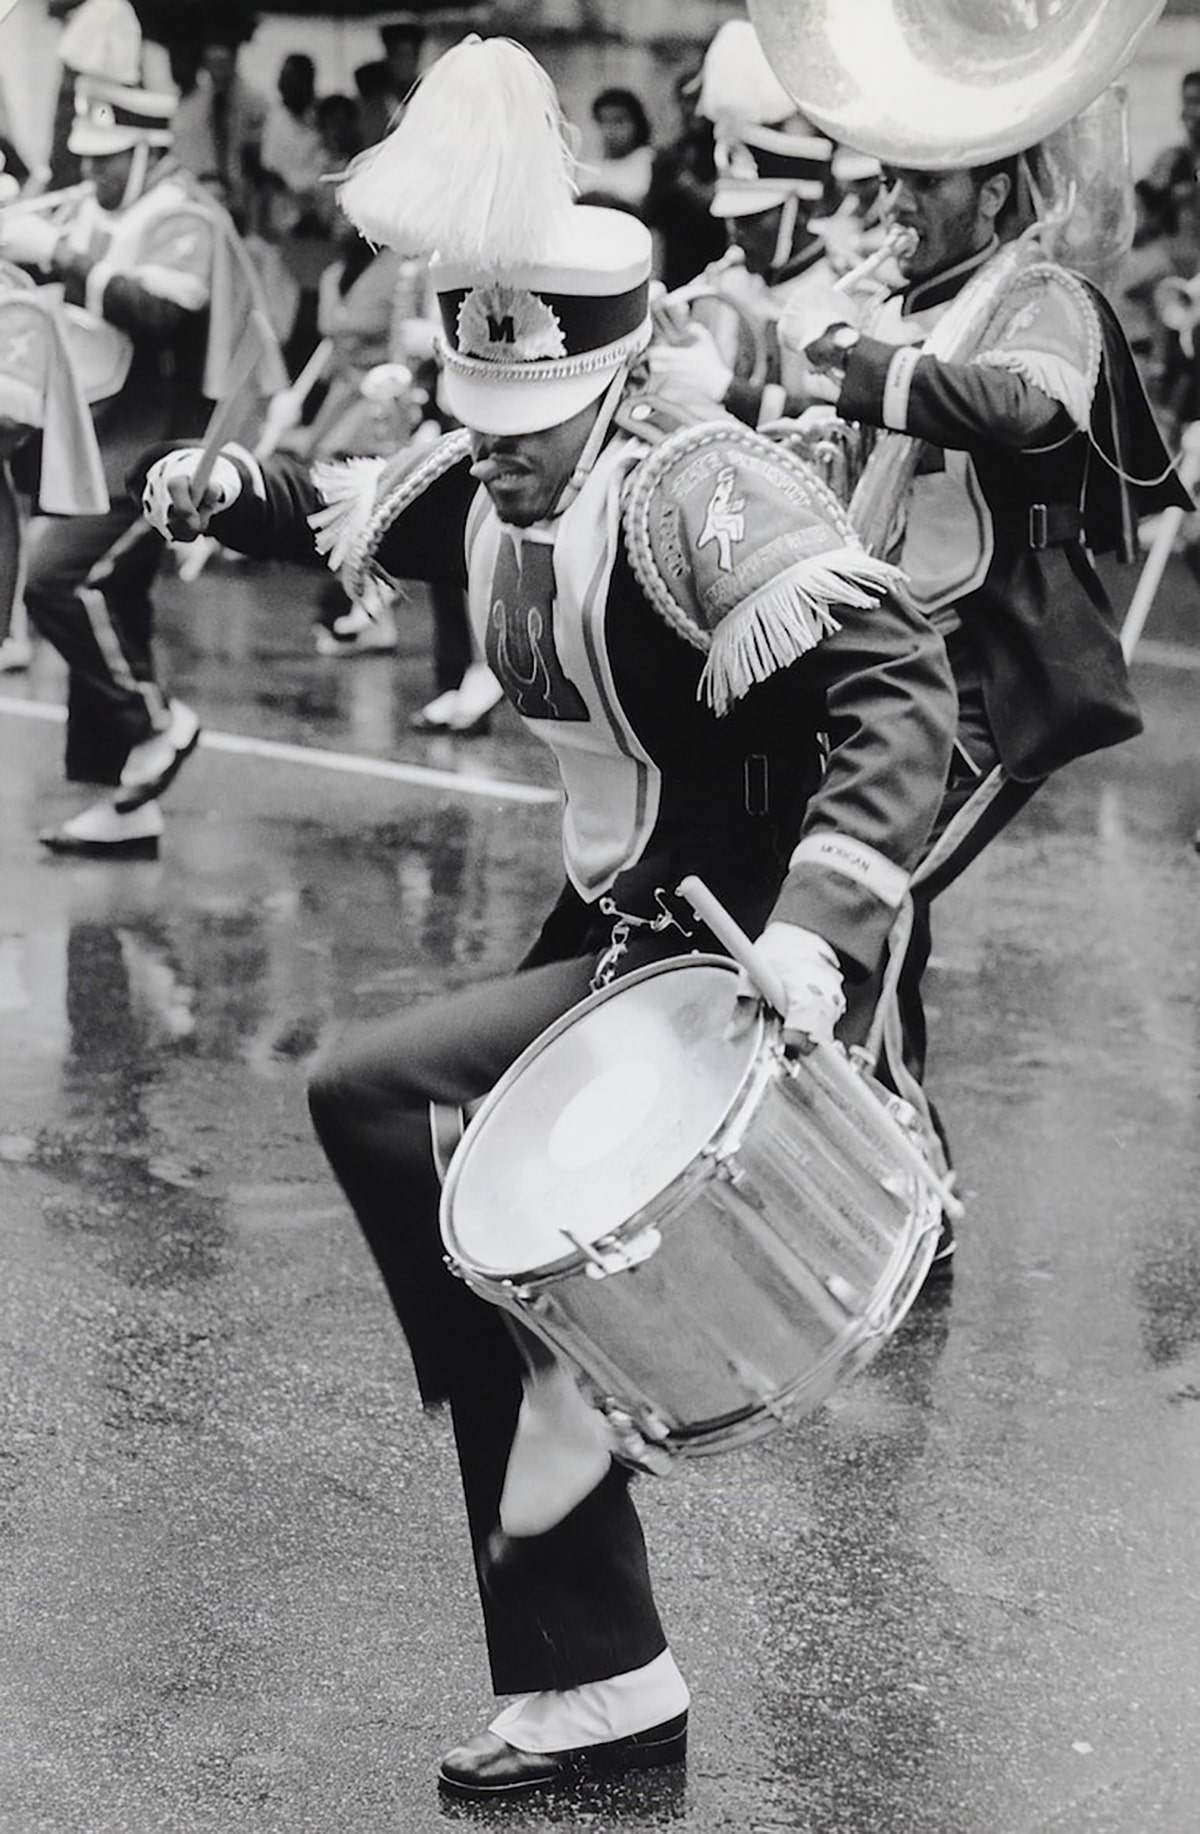 African American marching band member drumming on a snare drum